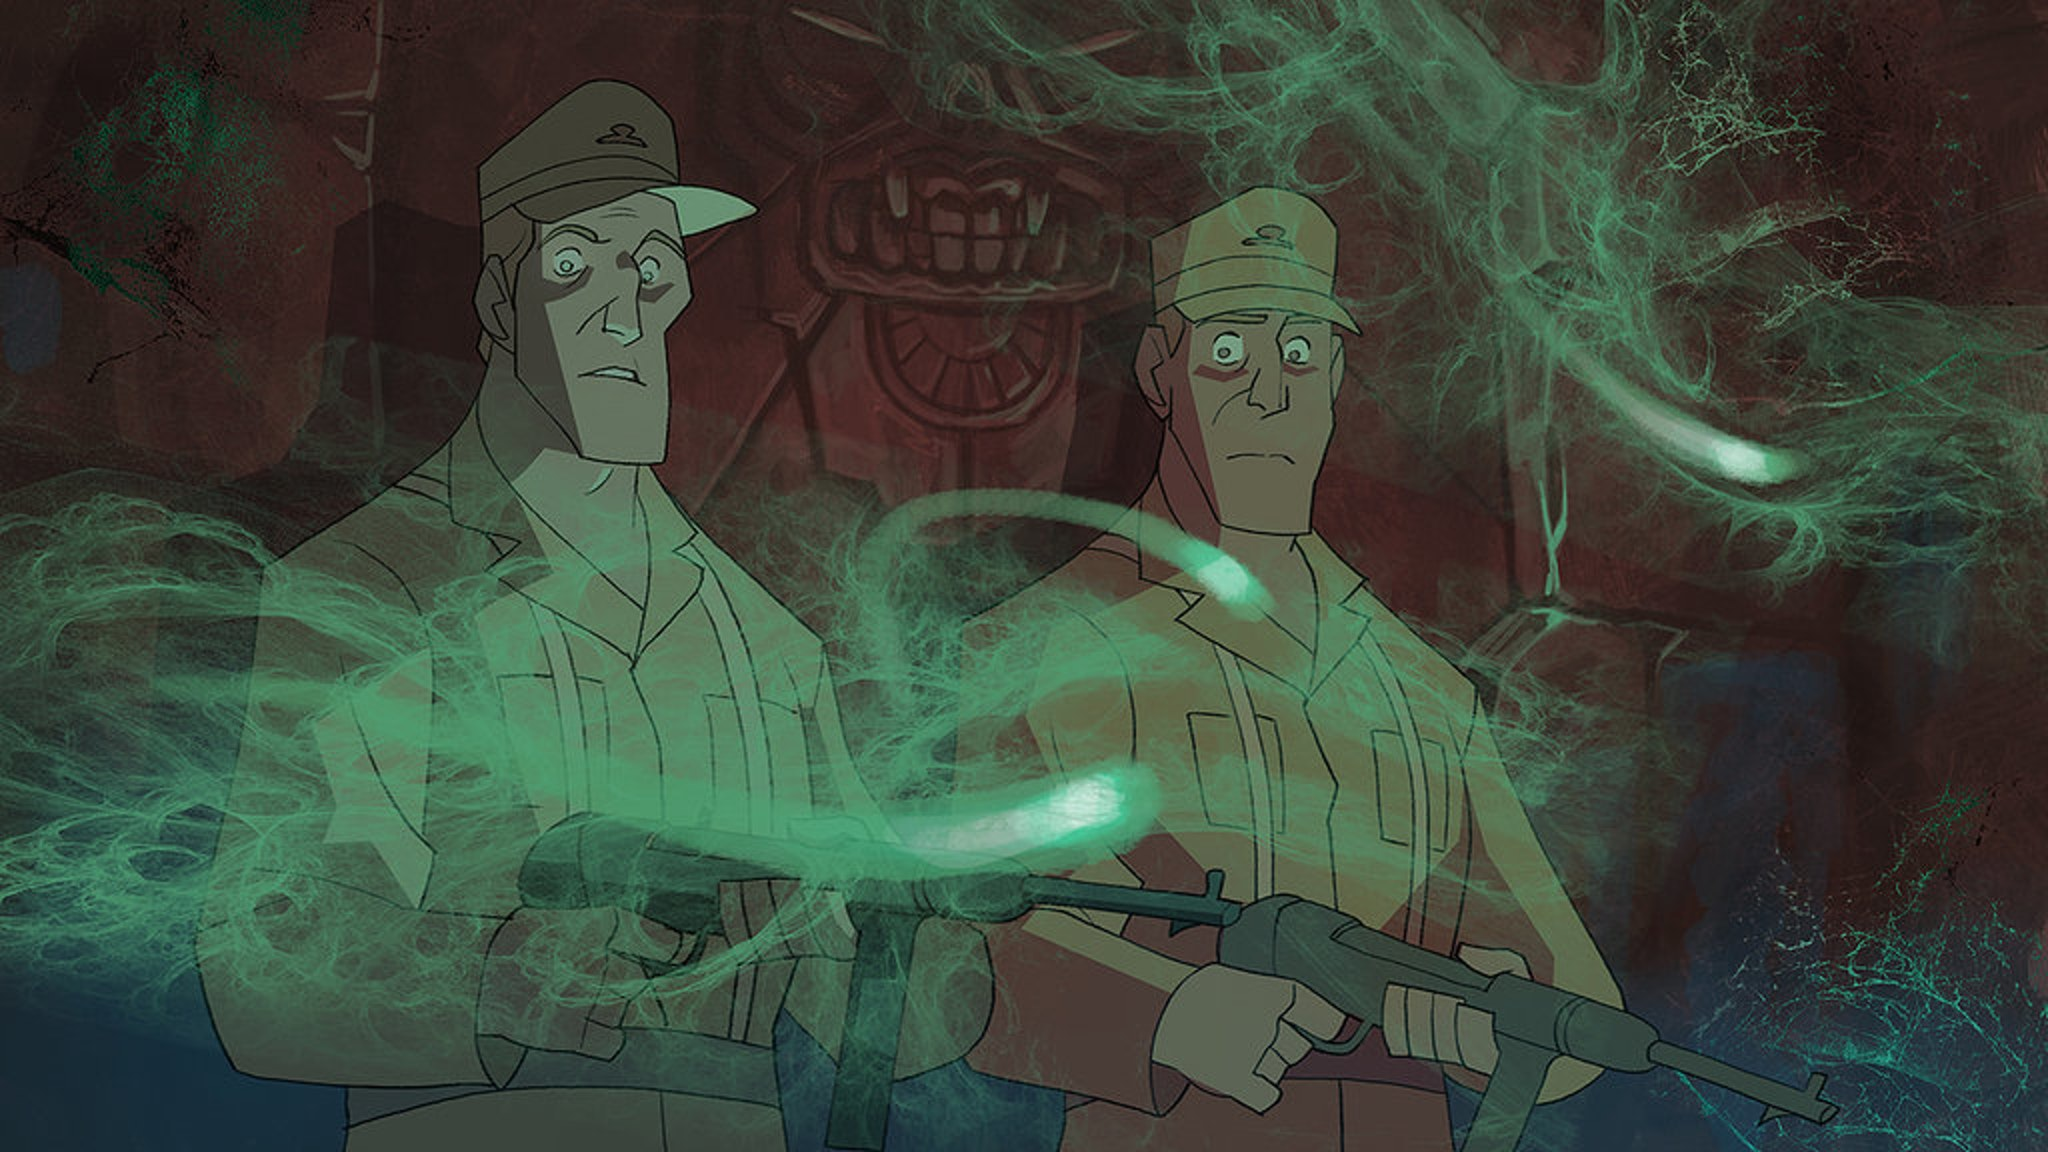 Nazi bad guys from the into to 'The Adventures of Indiana Jones'